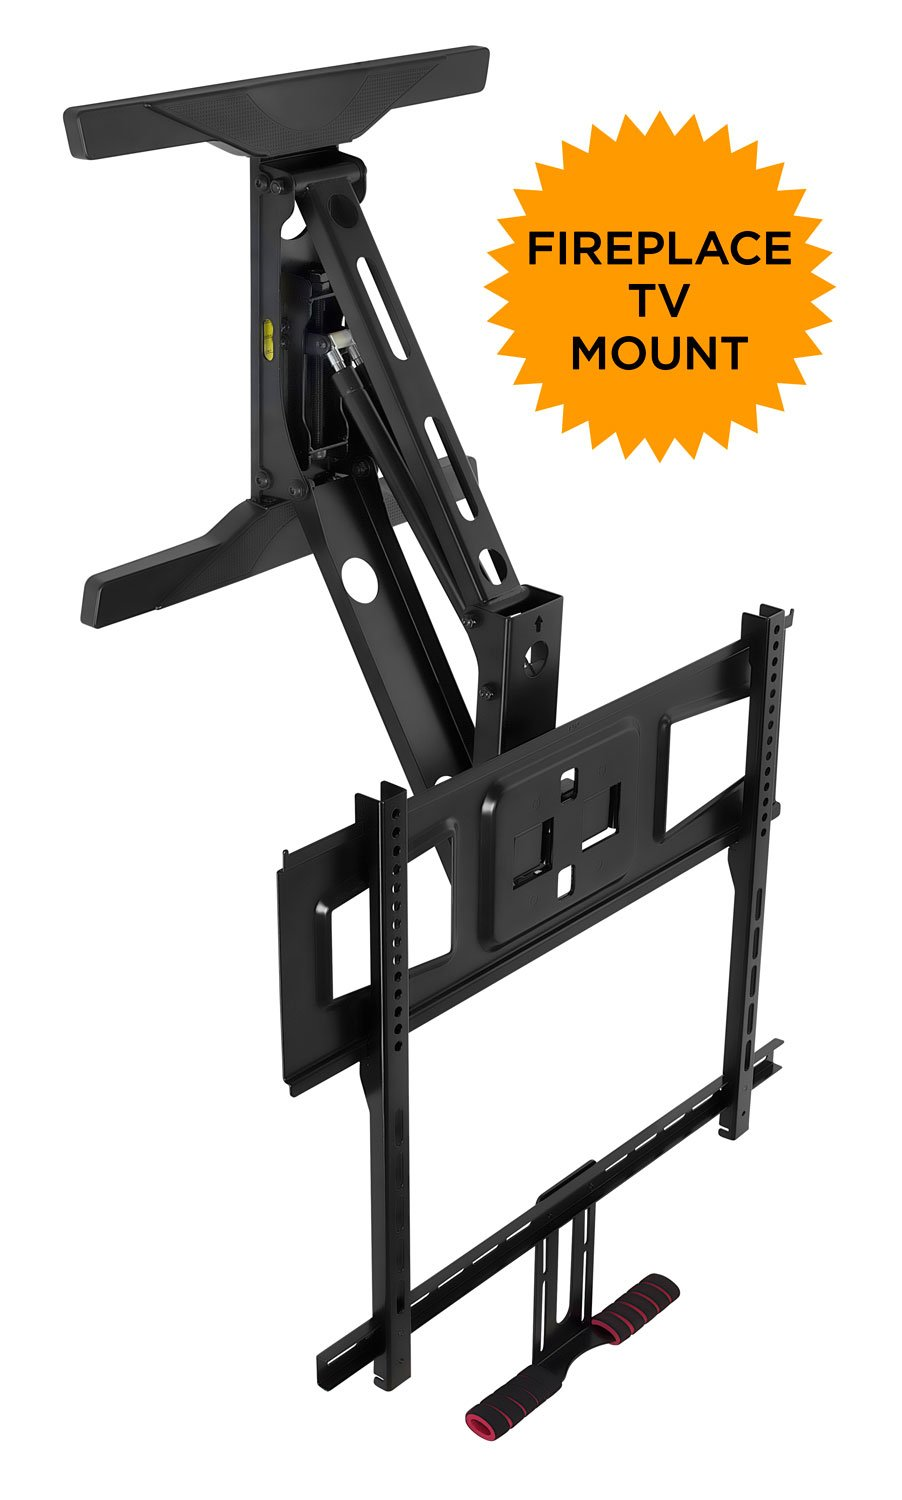 Mount-It! Fireplace TV Mount, Full Motion Pull Down Mantel TV Mounting Bracket with Height Adjustment, Fits 40-65 Inch TVs, 70 lbs Capacity by Mount-It!